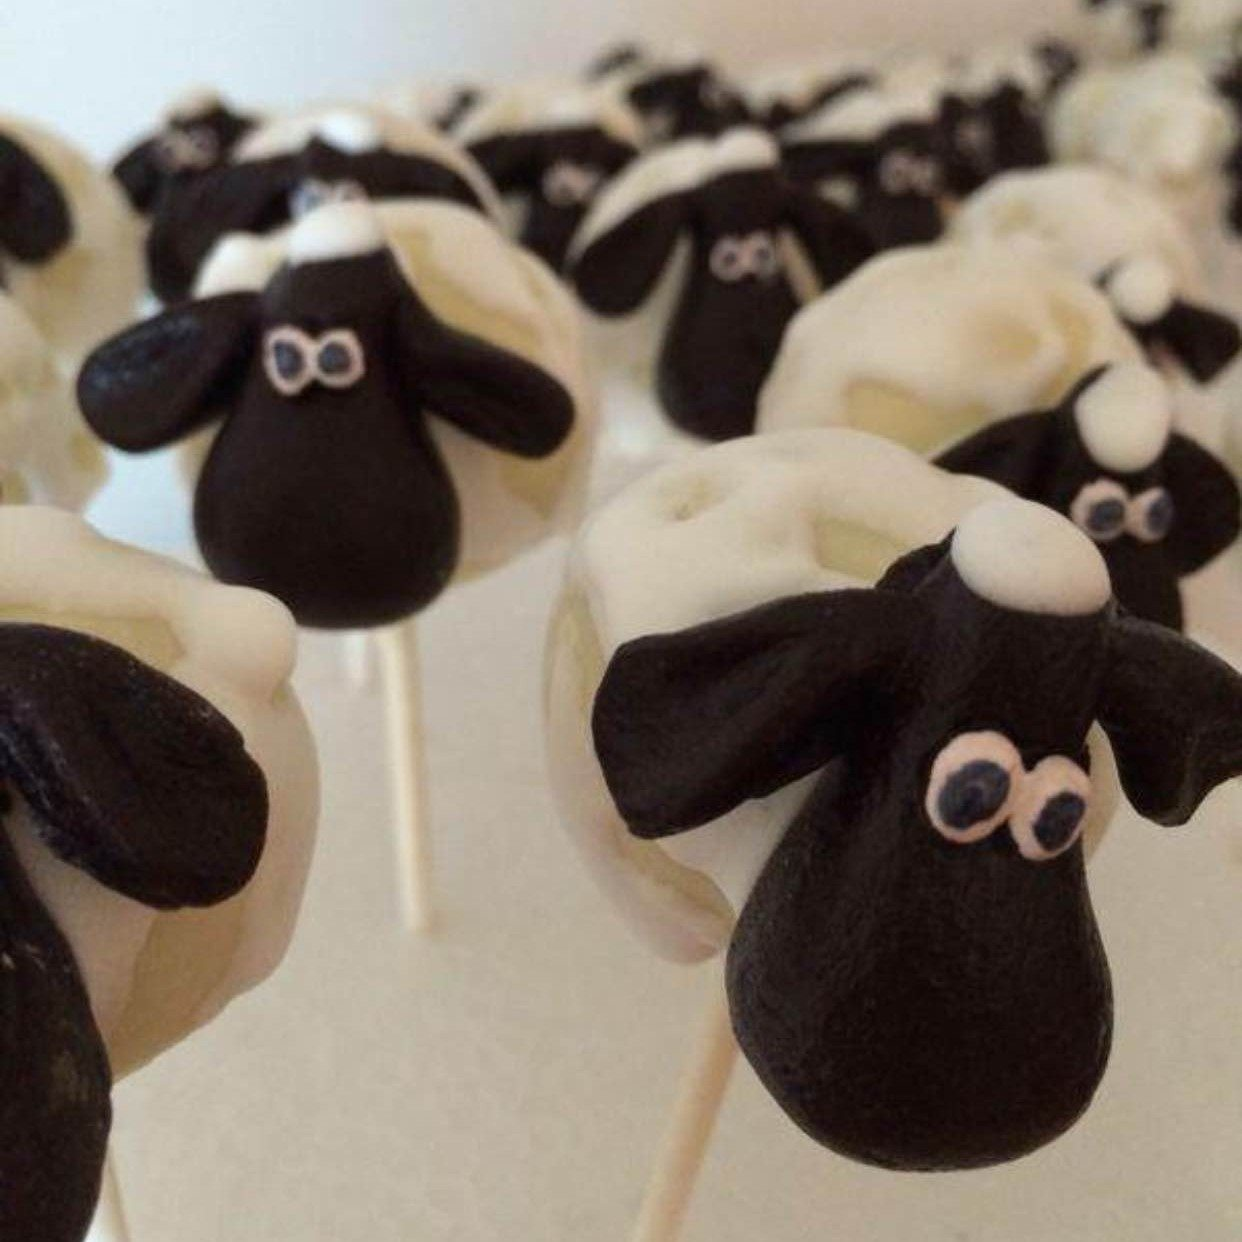 sheep cake pop by BRICK LANE Sweets